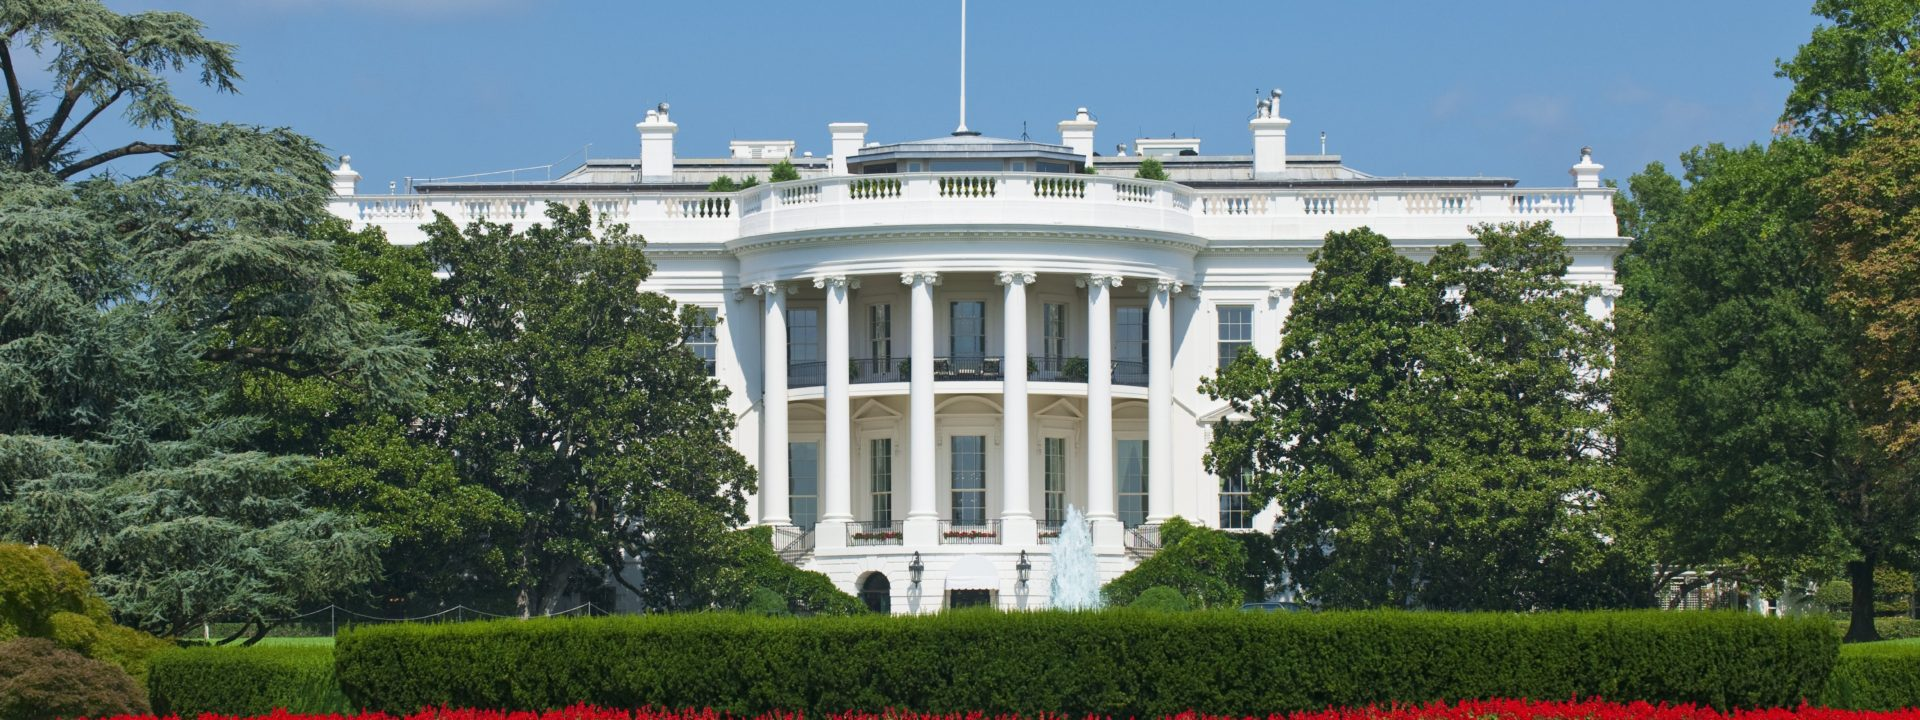 White House, the central monument of the city